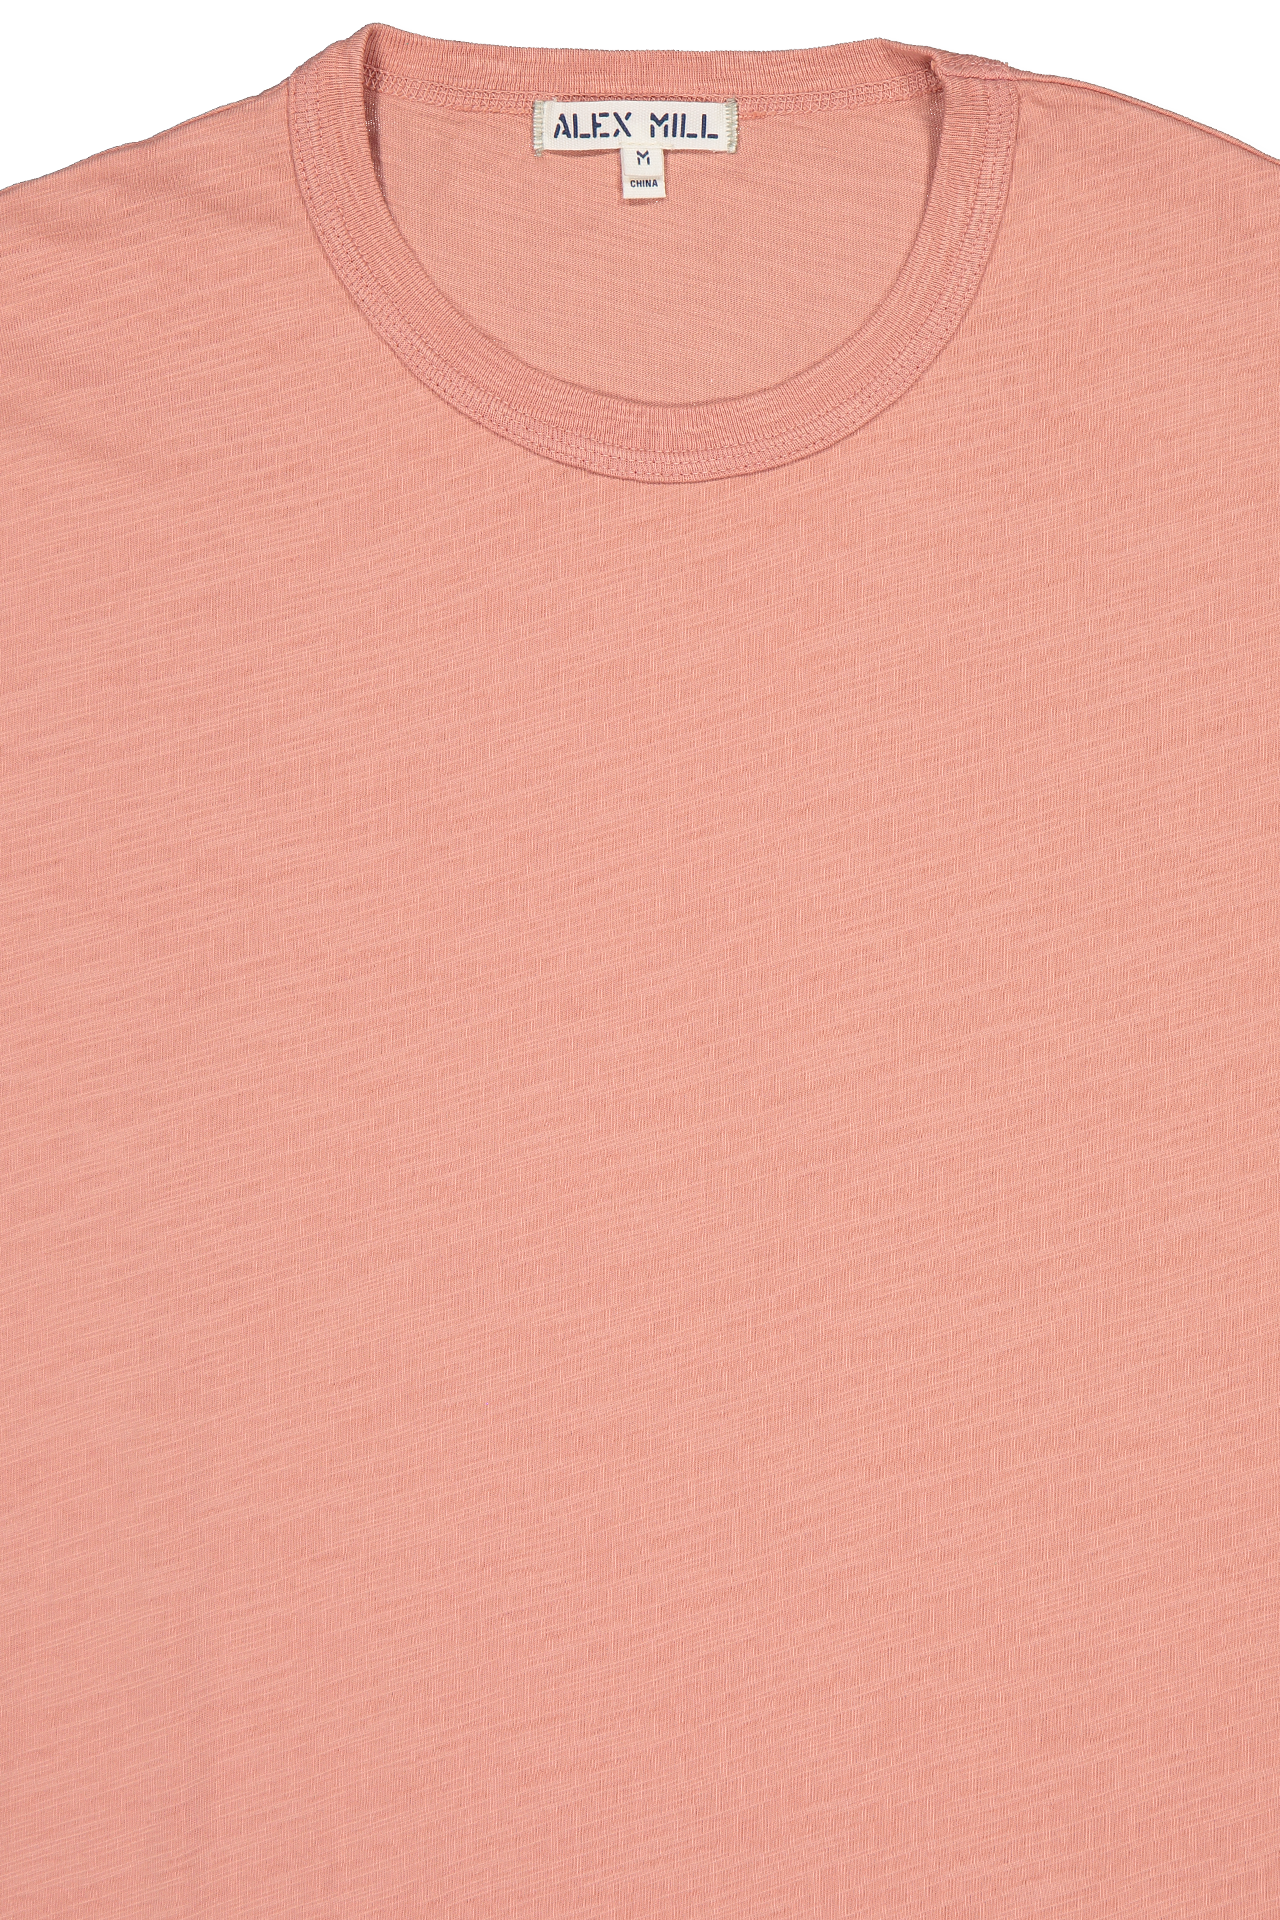 Front collar detail image of Alex Mill Men's Short Sleeve Slub Cotton Tee City Pink